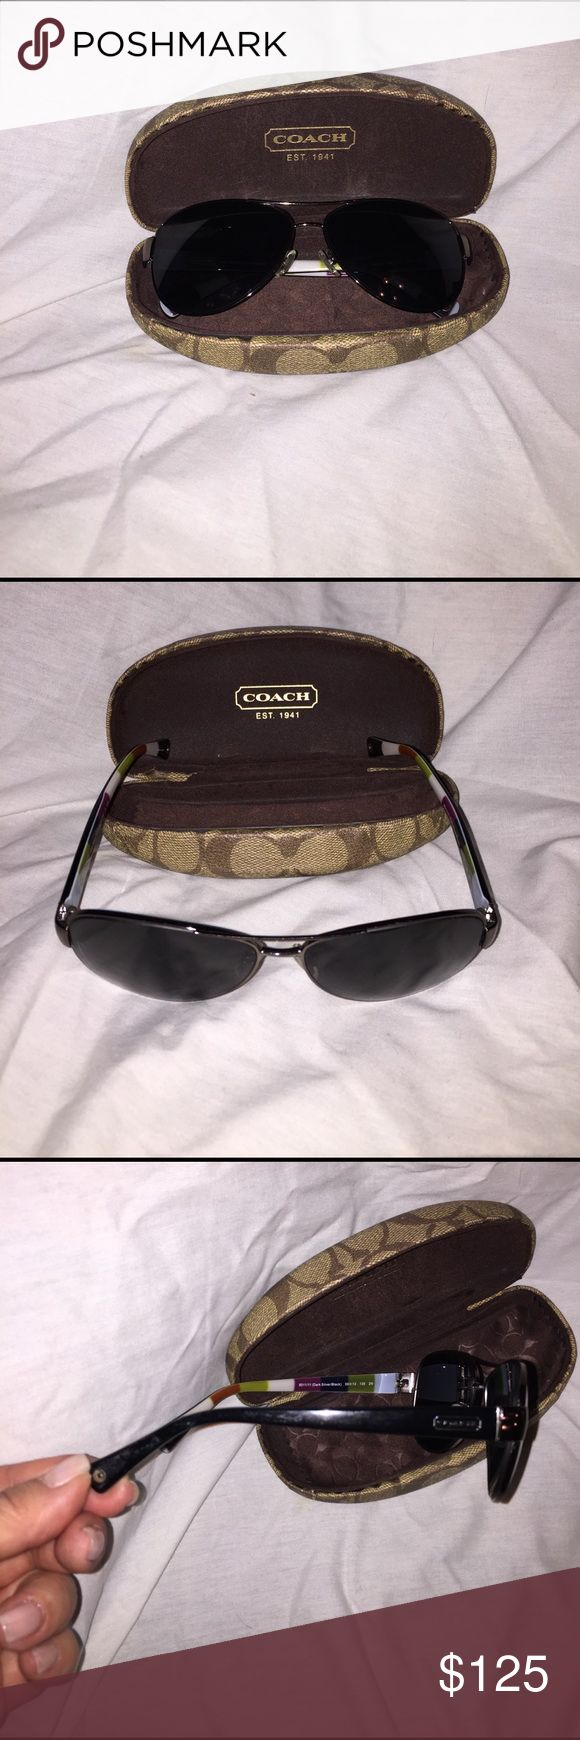 Coach Rx sunglasses Coach Rx aviator sunglasses with hard case. Has prescription lenses for distance can be switched out with your prescription or with no Rx lenses. Coach Accessories Sunglasses